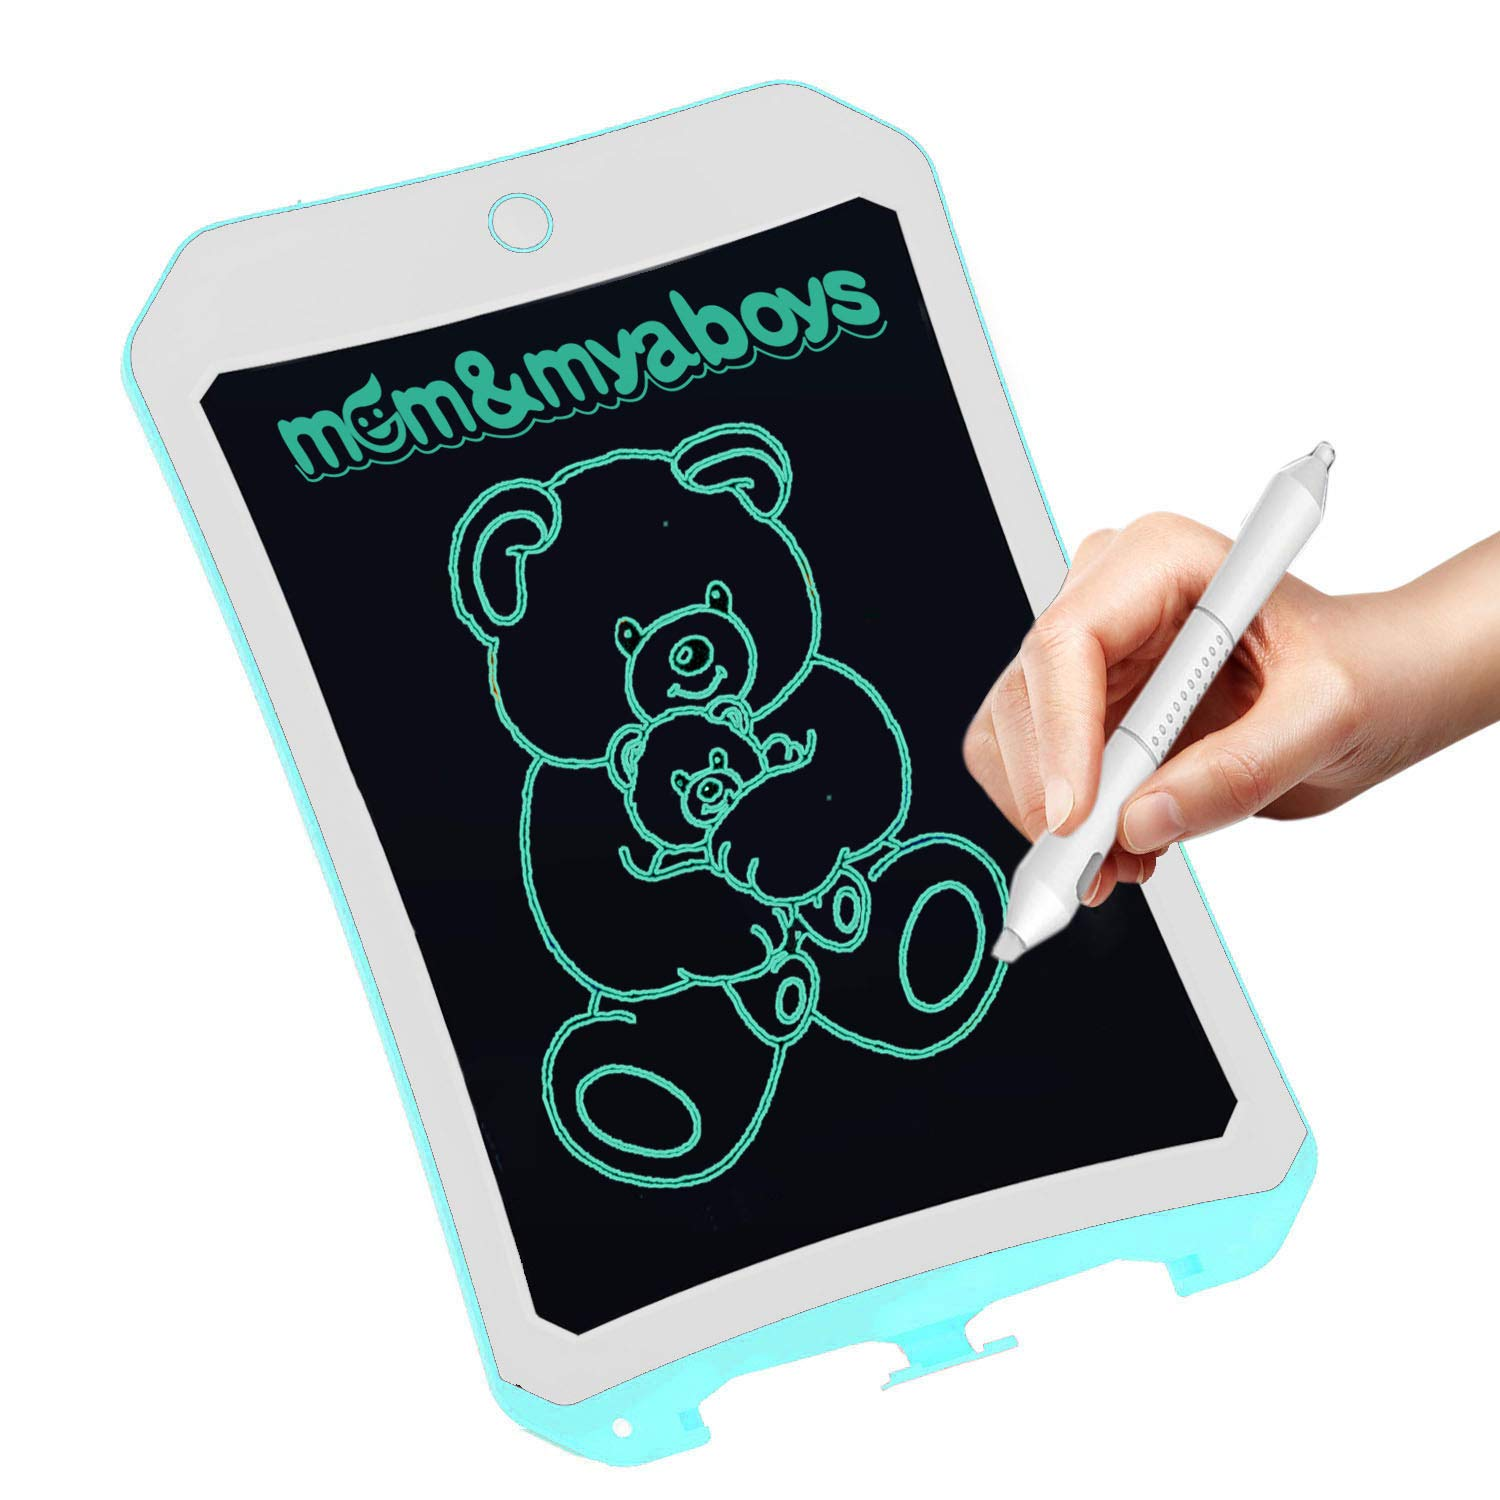 yyhappy childhood Writing Tablet for/Birthday Gift,Kids Toy 8.5 in Colorful LCD Writing Tablet Electronic Writings Pads Drawing Board Gifts for Kids Office Blackboard-Erase Button Lock Included Red